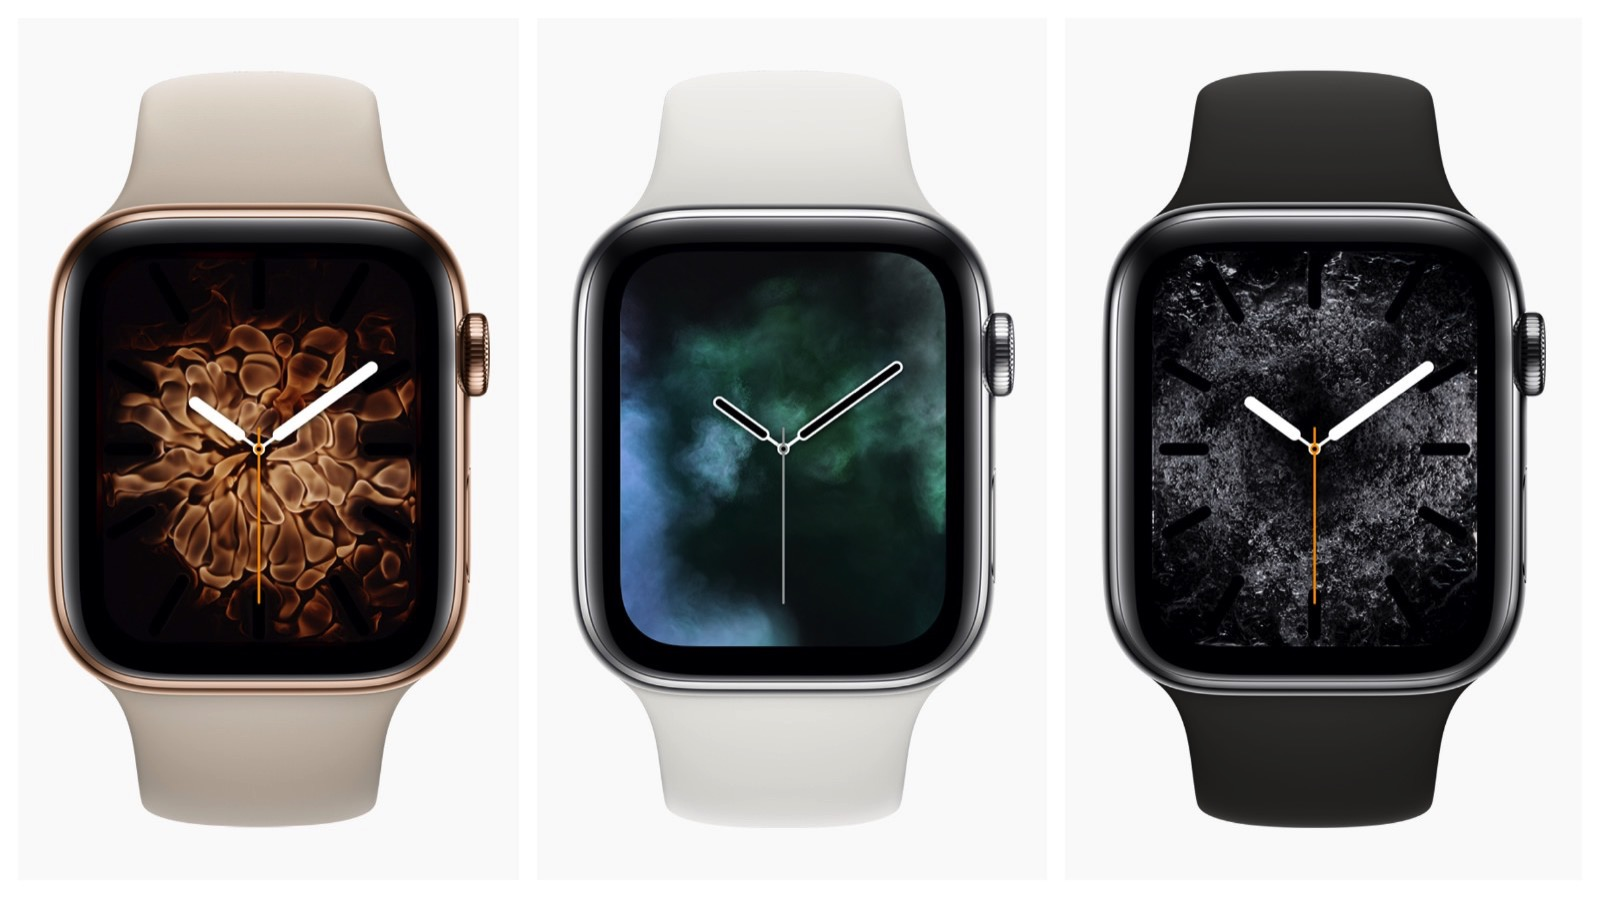 New Watch Faces for series 4